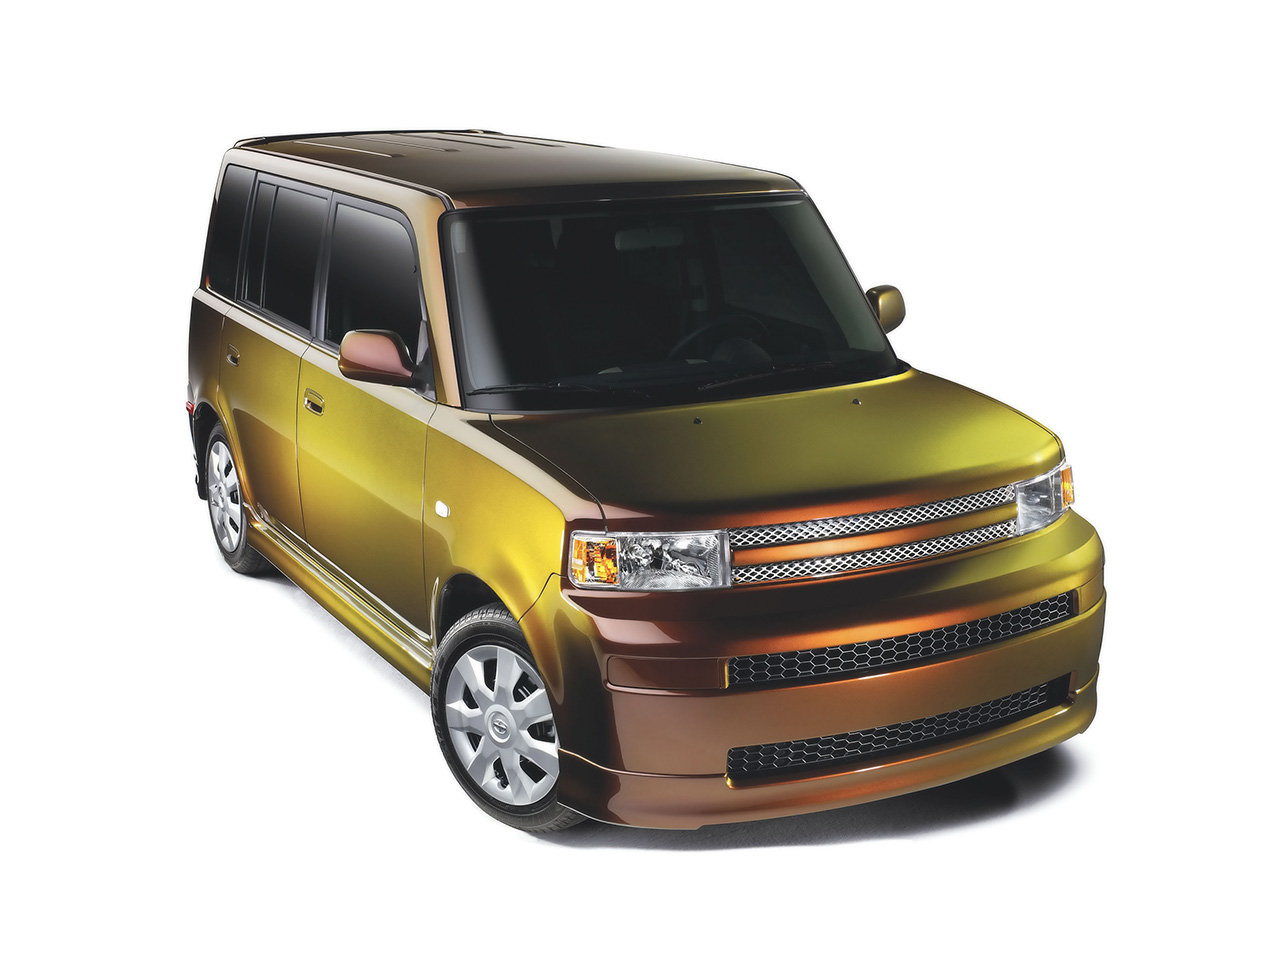 2006 Scion Xb Release Series 4 0 History  Pictures  Sales Value  Research And News